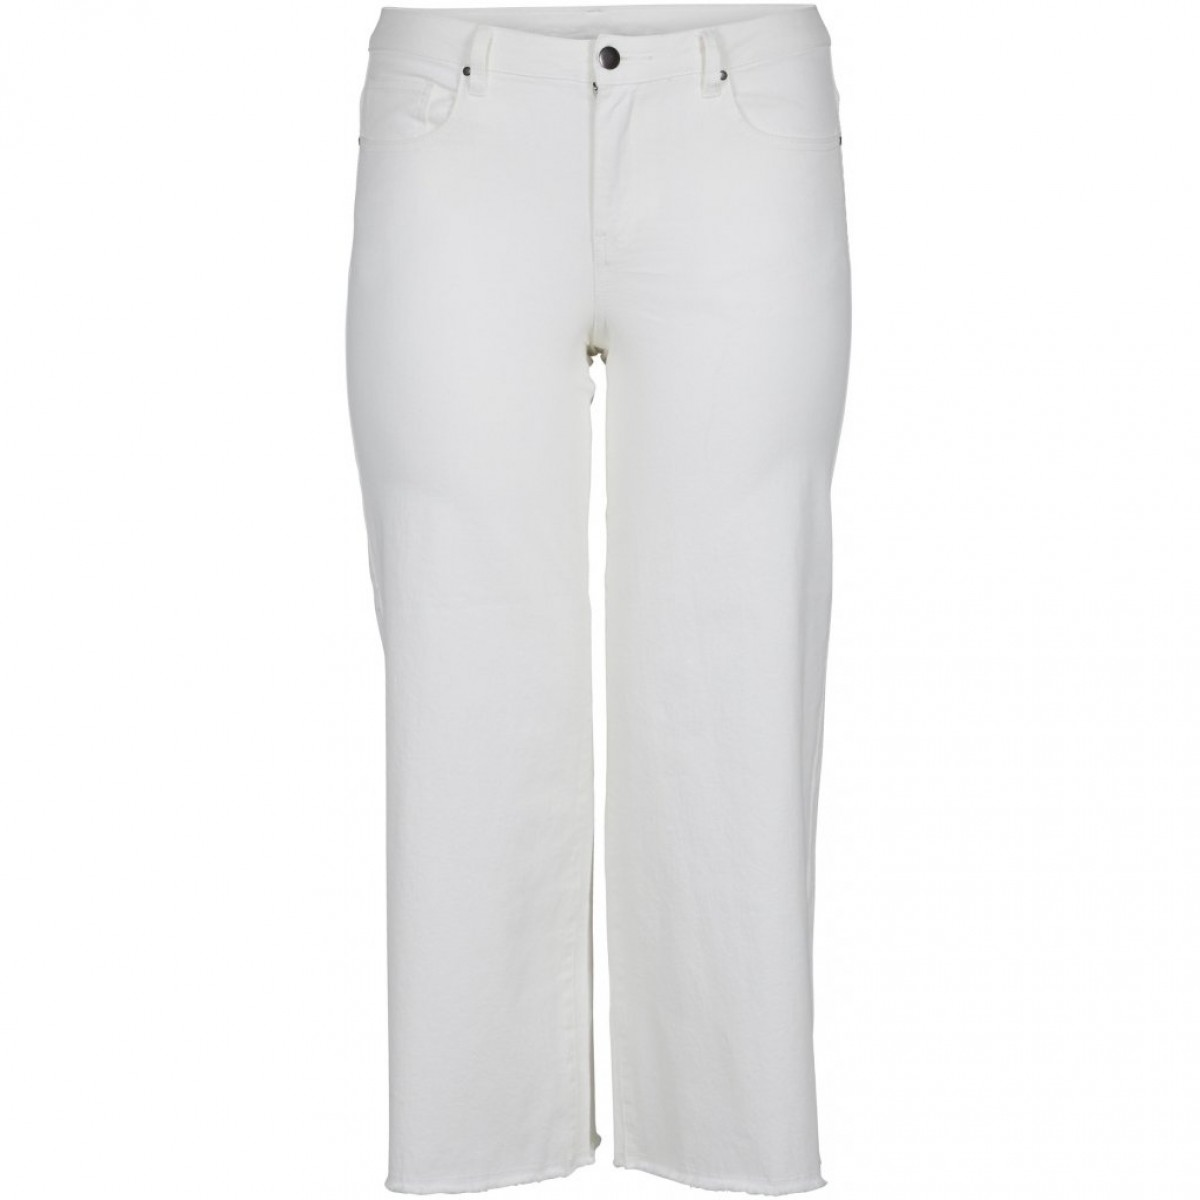 Zoey 204-0510 sia wide jeans